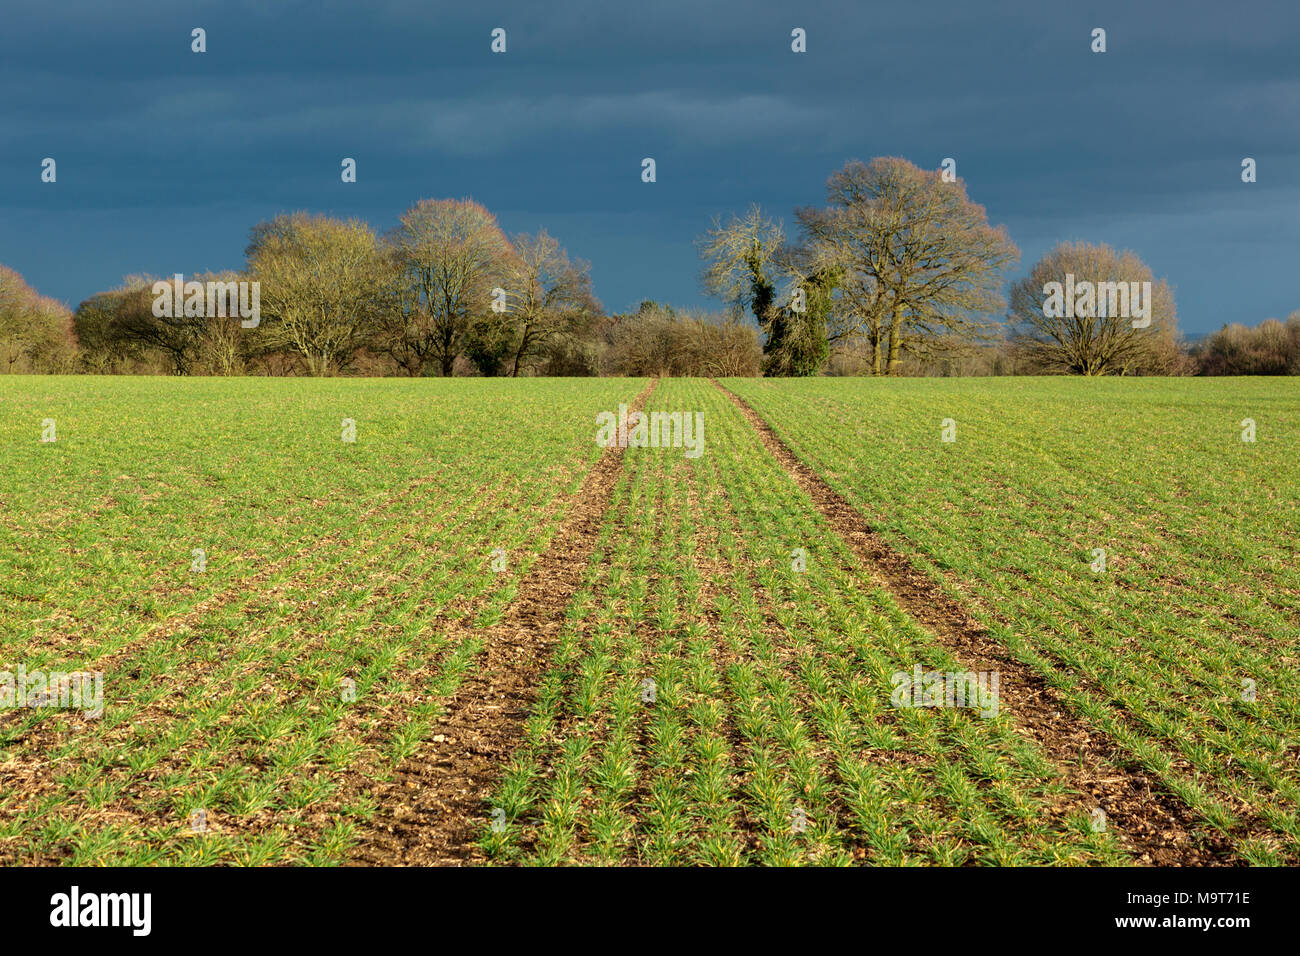 Farm fields in the Chiltern Hills, Oxfordshire, England UK in autumn light - Stock Image